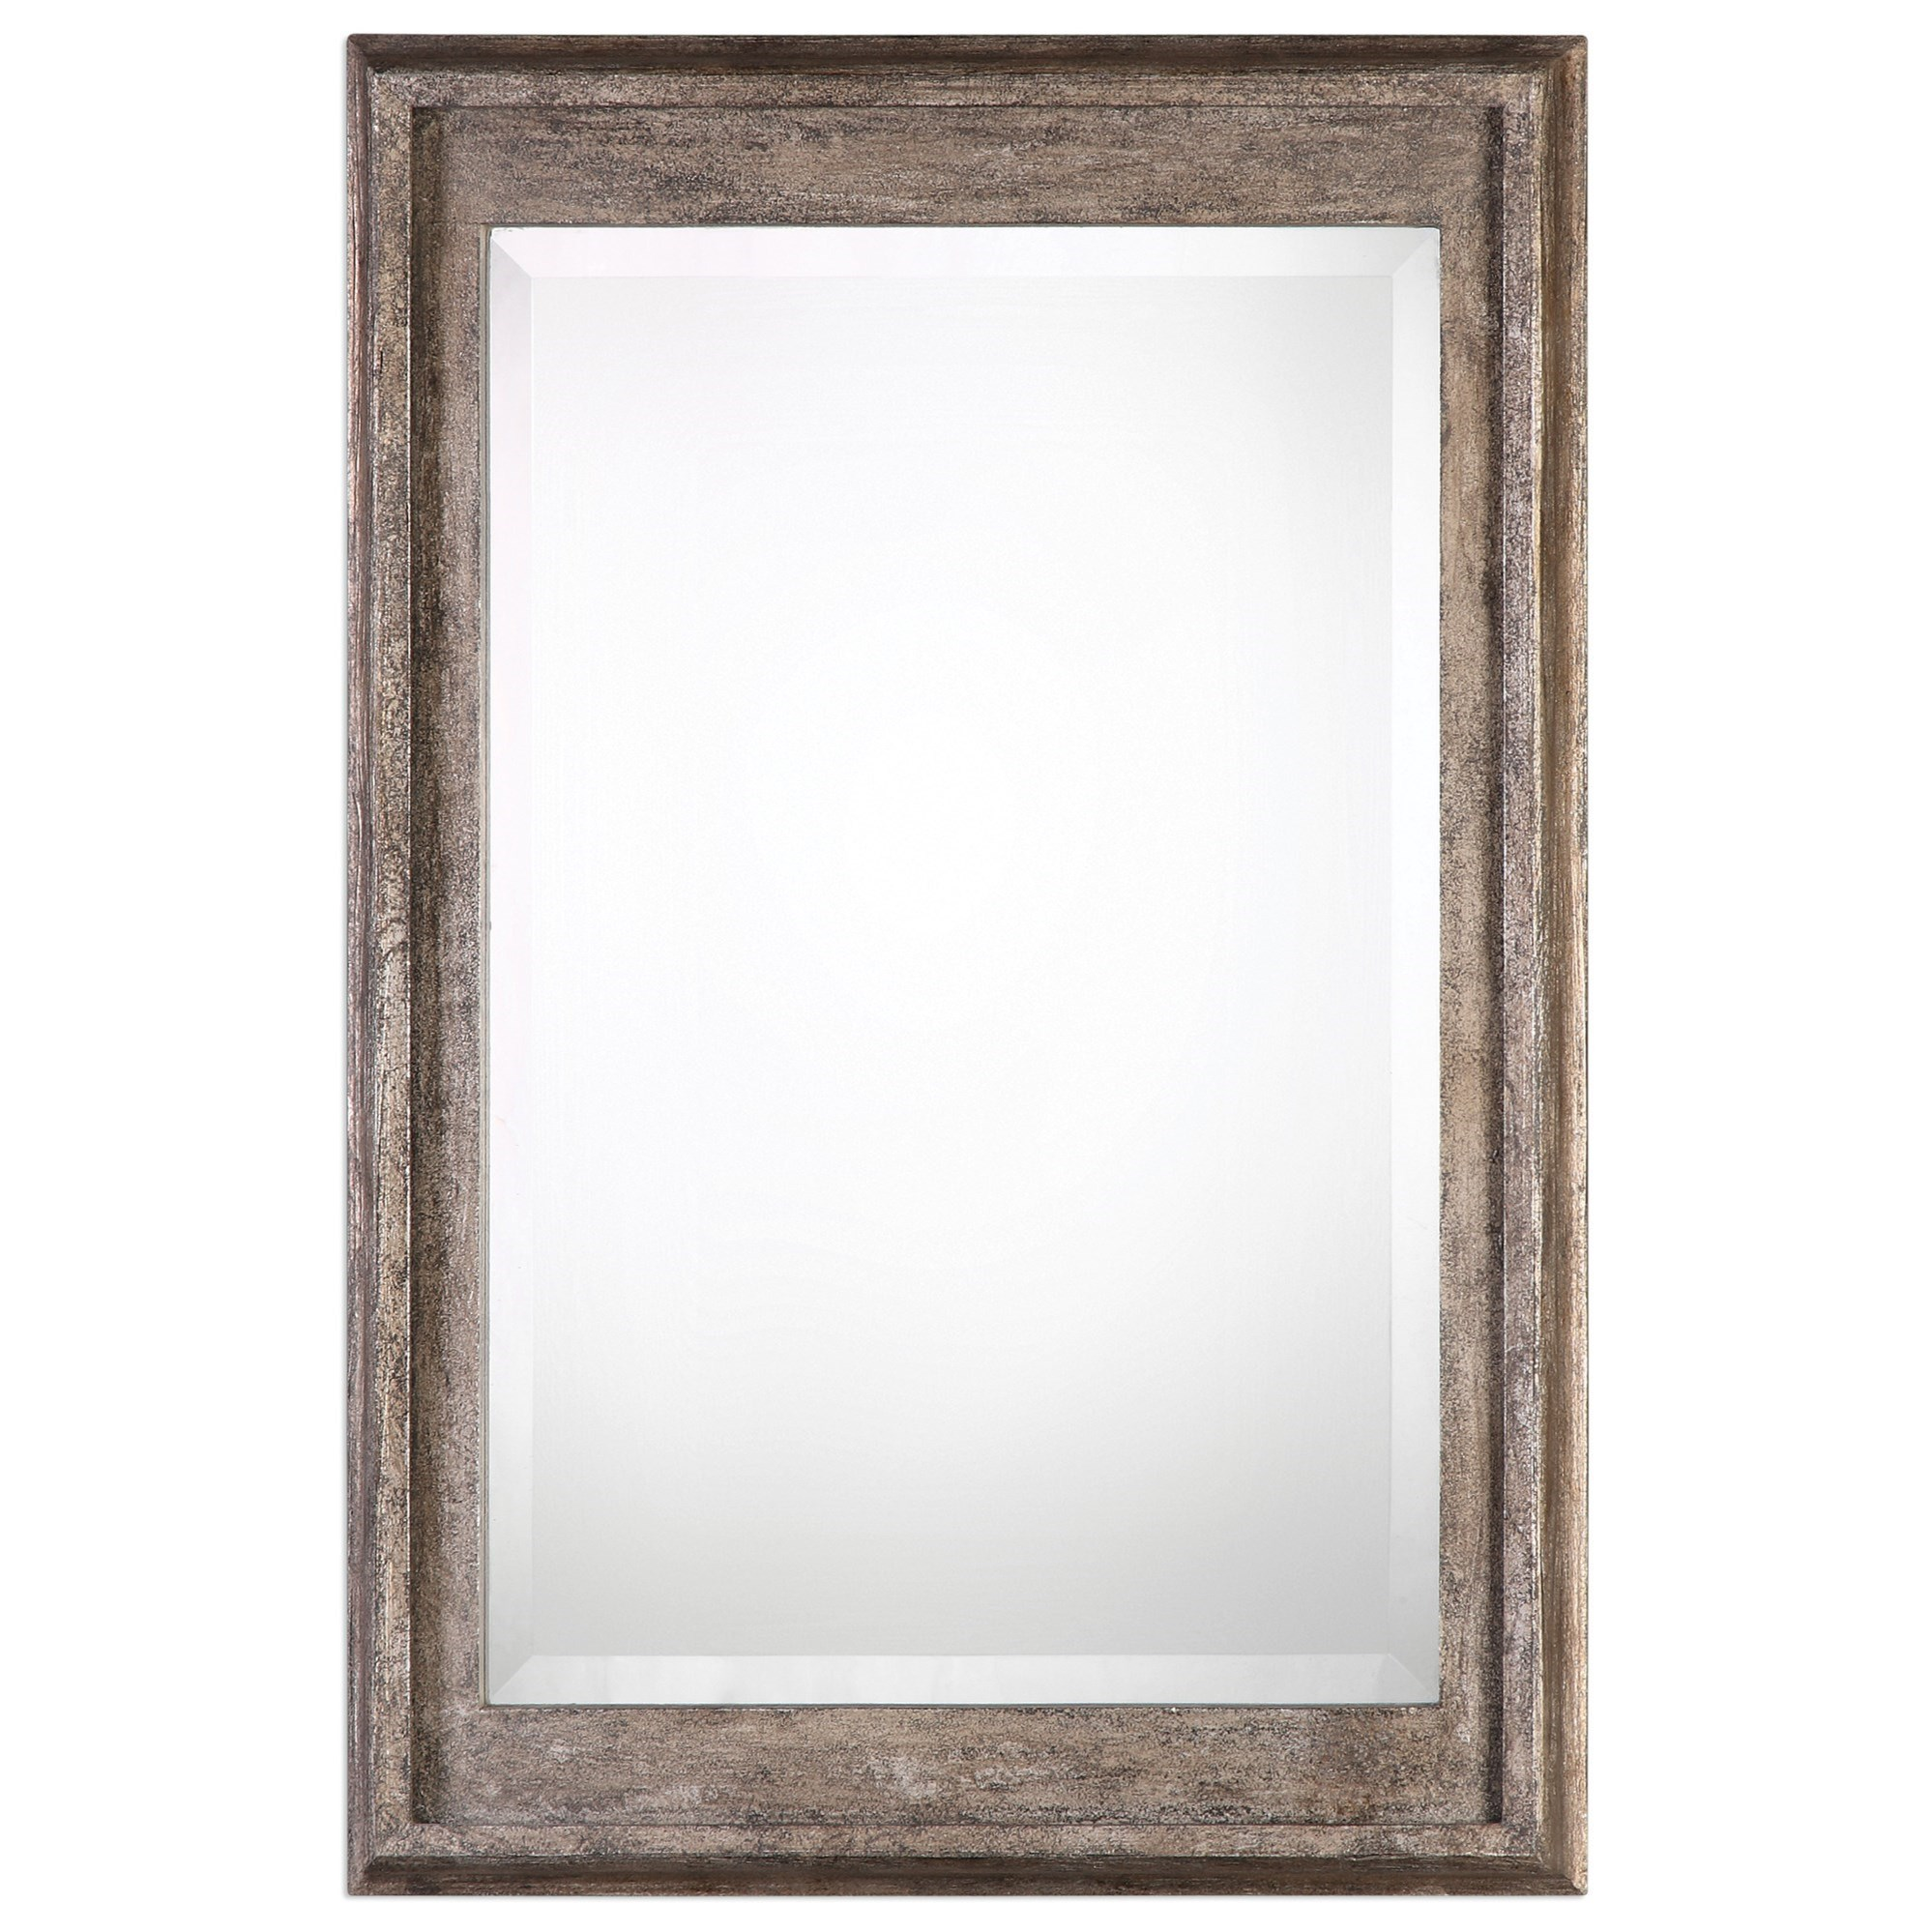 Uttermost Mirrors Allegan - Item Number: 09116